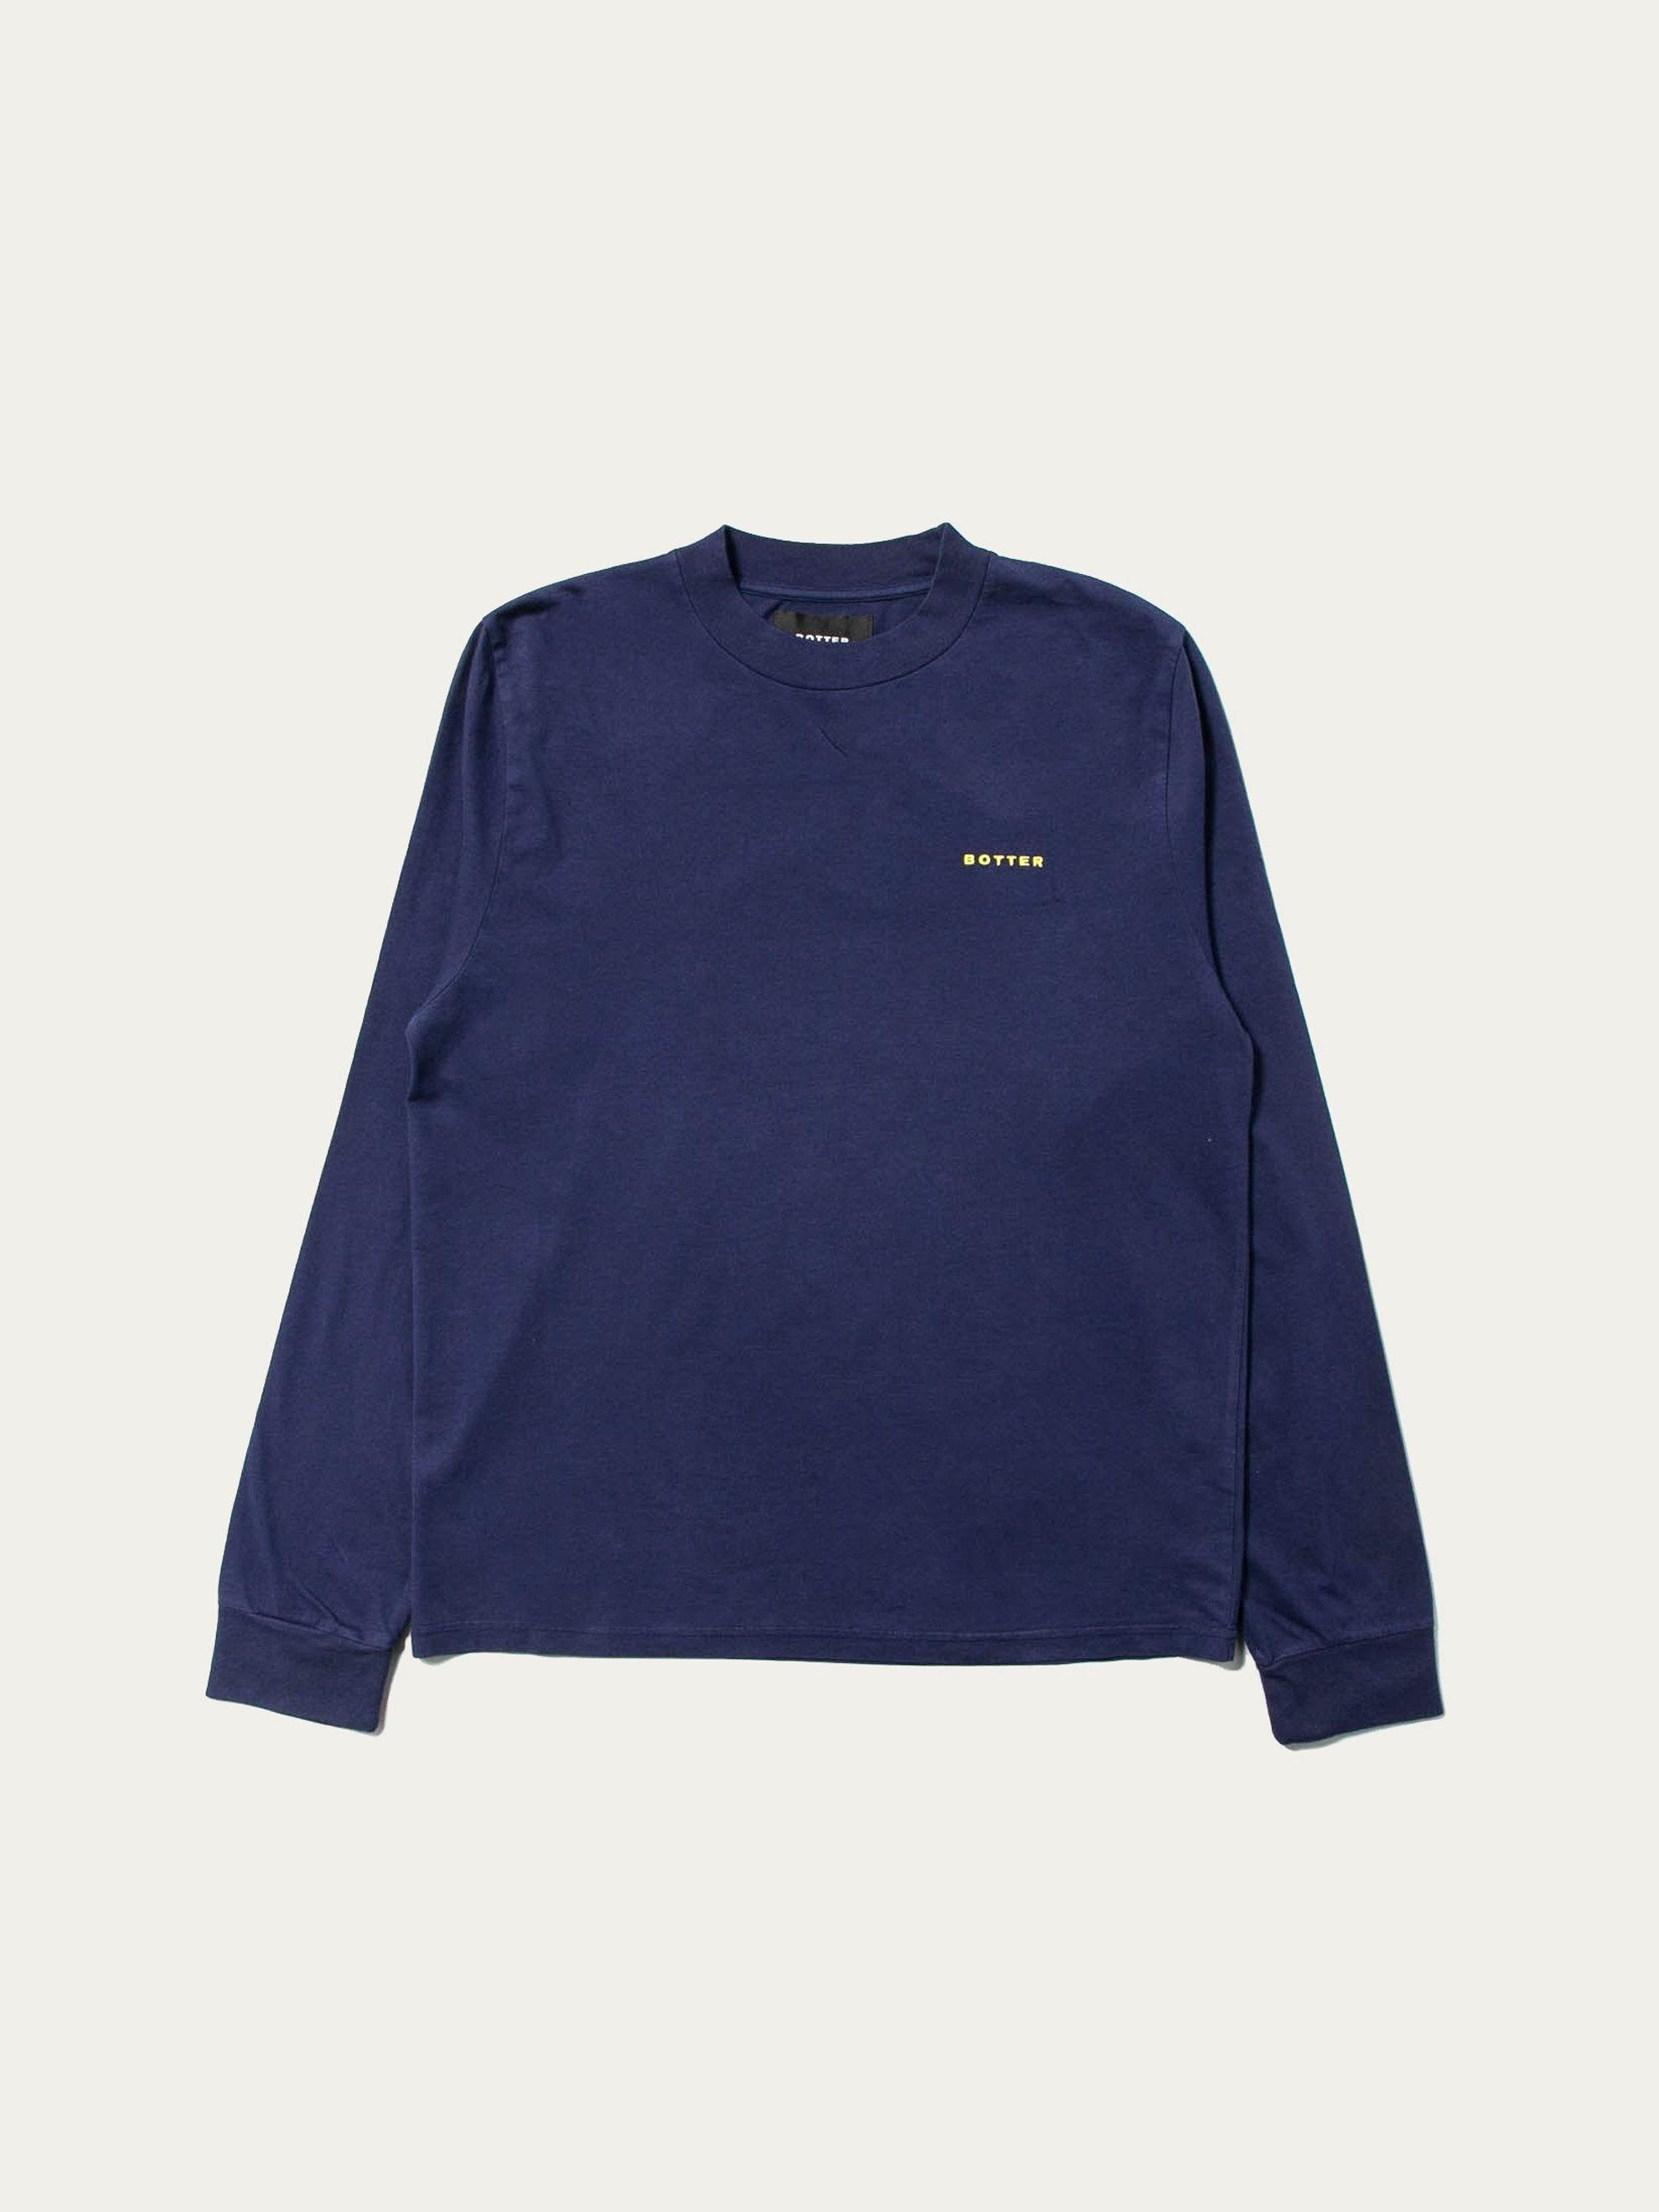 Navy Long Sleeve Embroidery Top 1